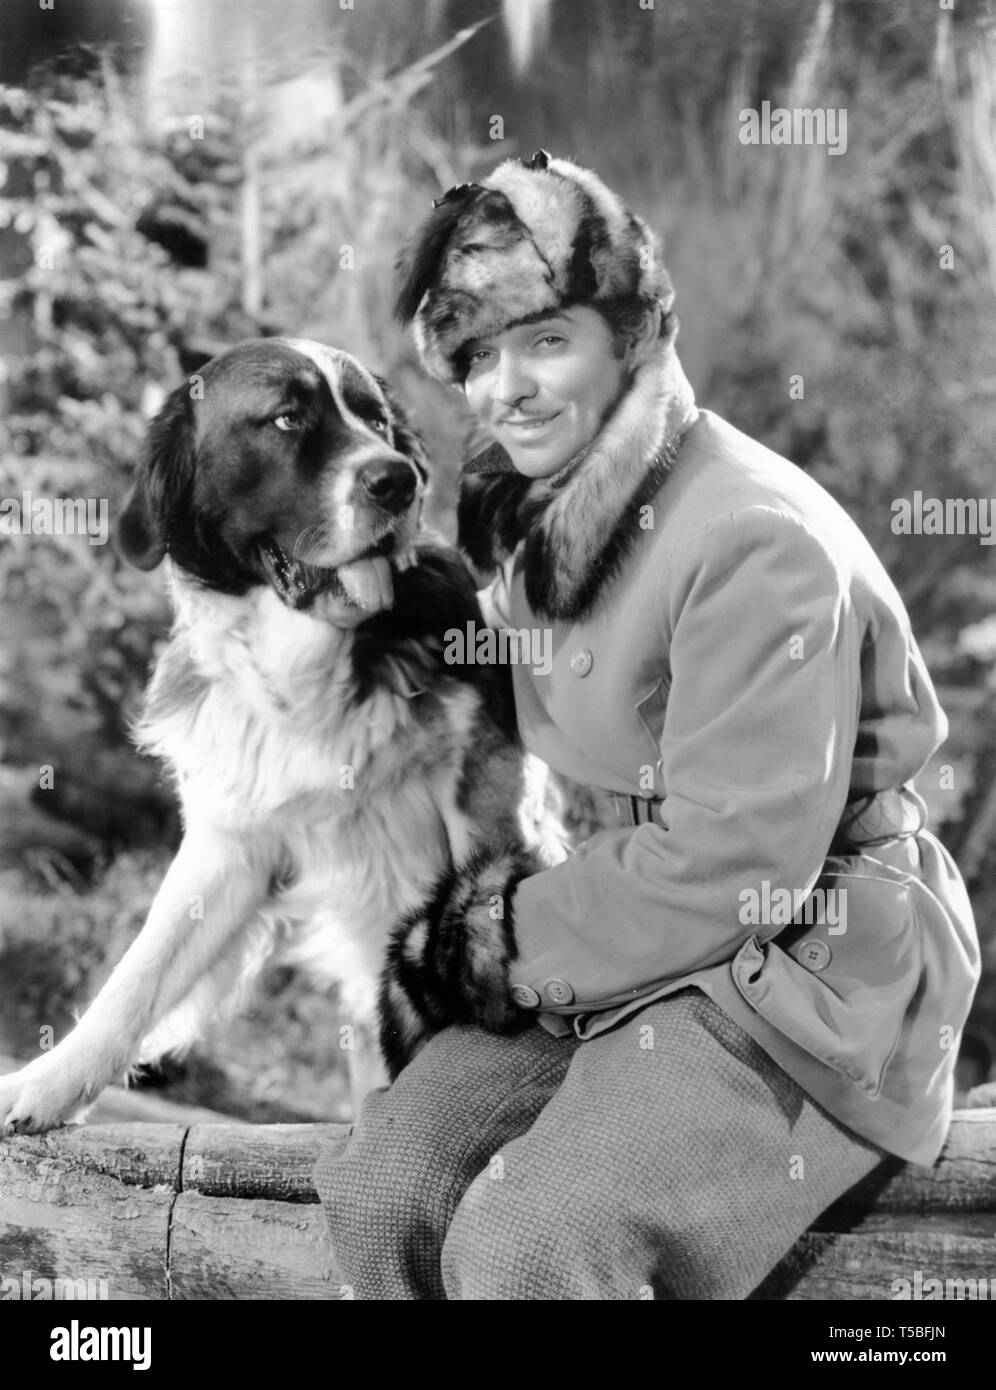 CLARK GABLE as Jack Thornton with BUCK the Sled Dog THE CALL OF THE WILD 1935 director William A. Wellman novel Jack London producer Darryl F. Zanuck 20th Century Pictures / United Artists - Stock Image